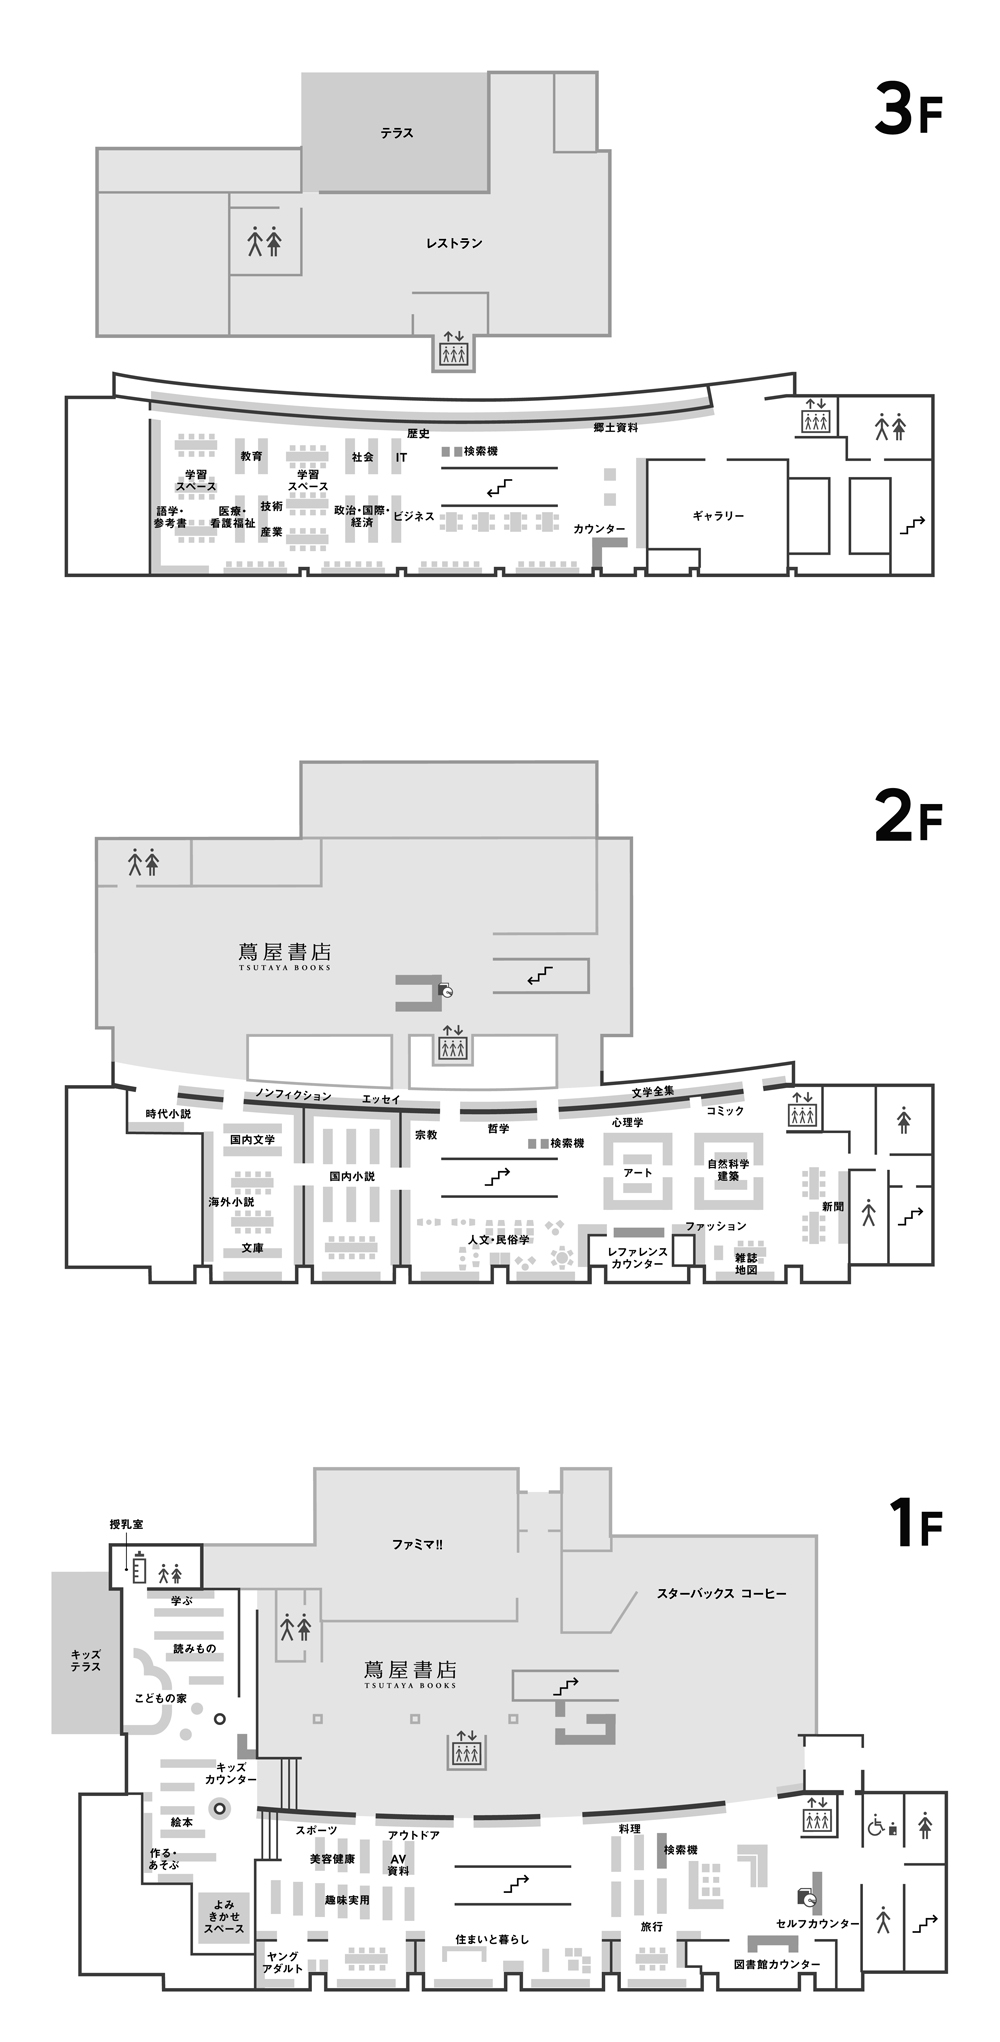 Tagajo City Municipal Lilbrary (Main Building)  Facility Map